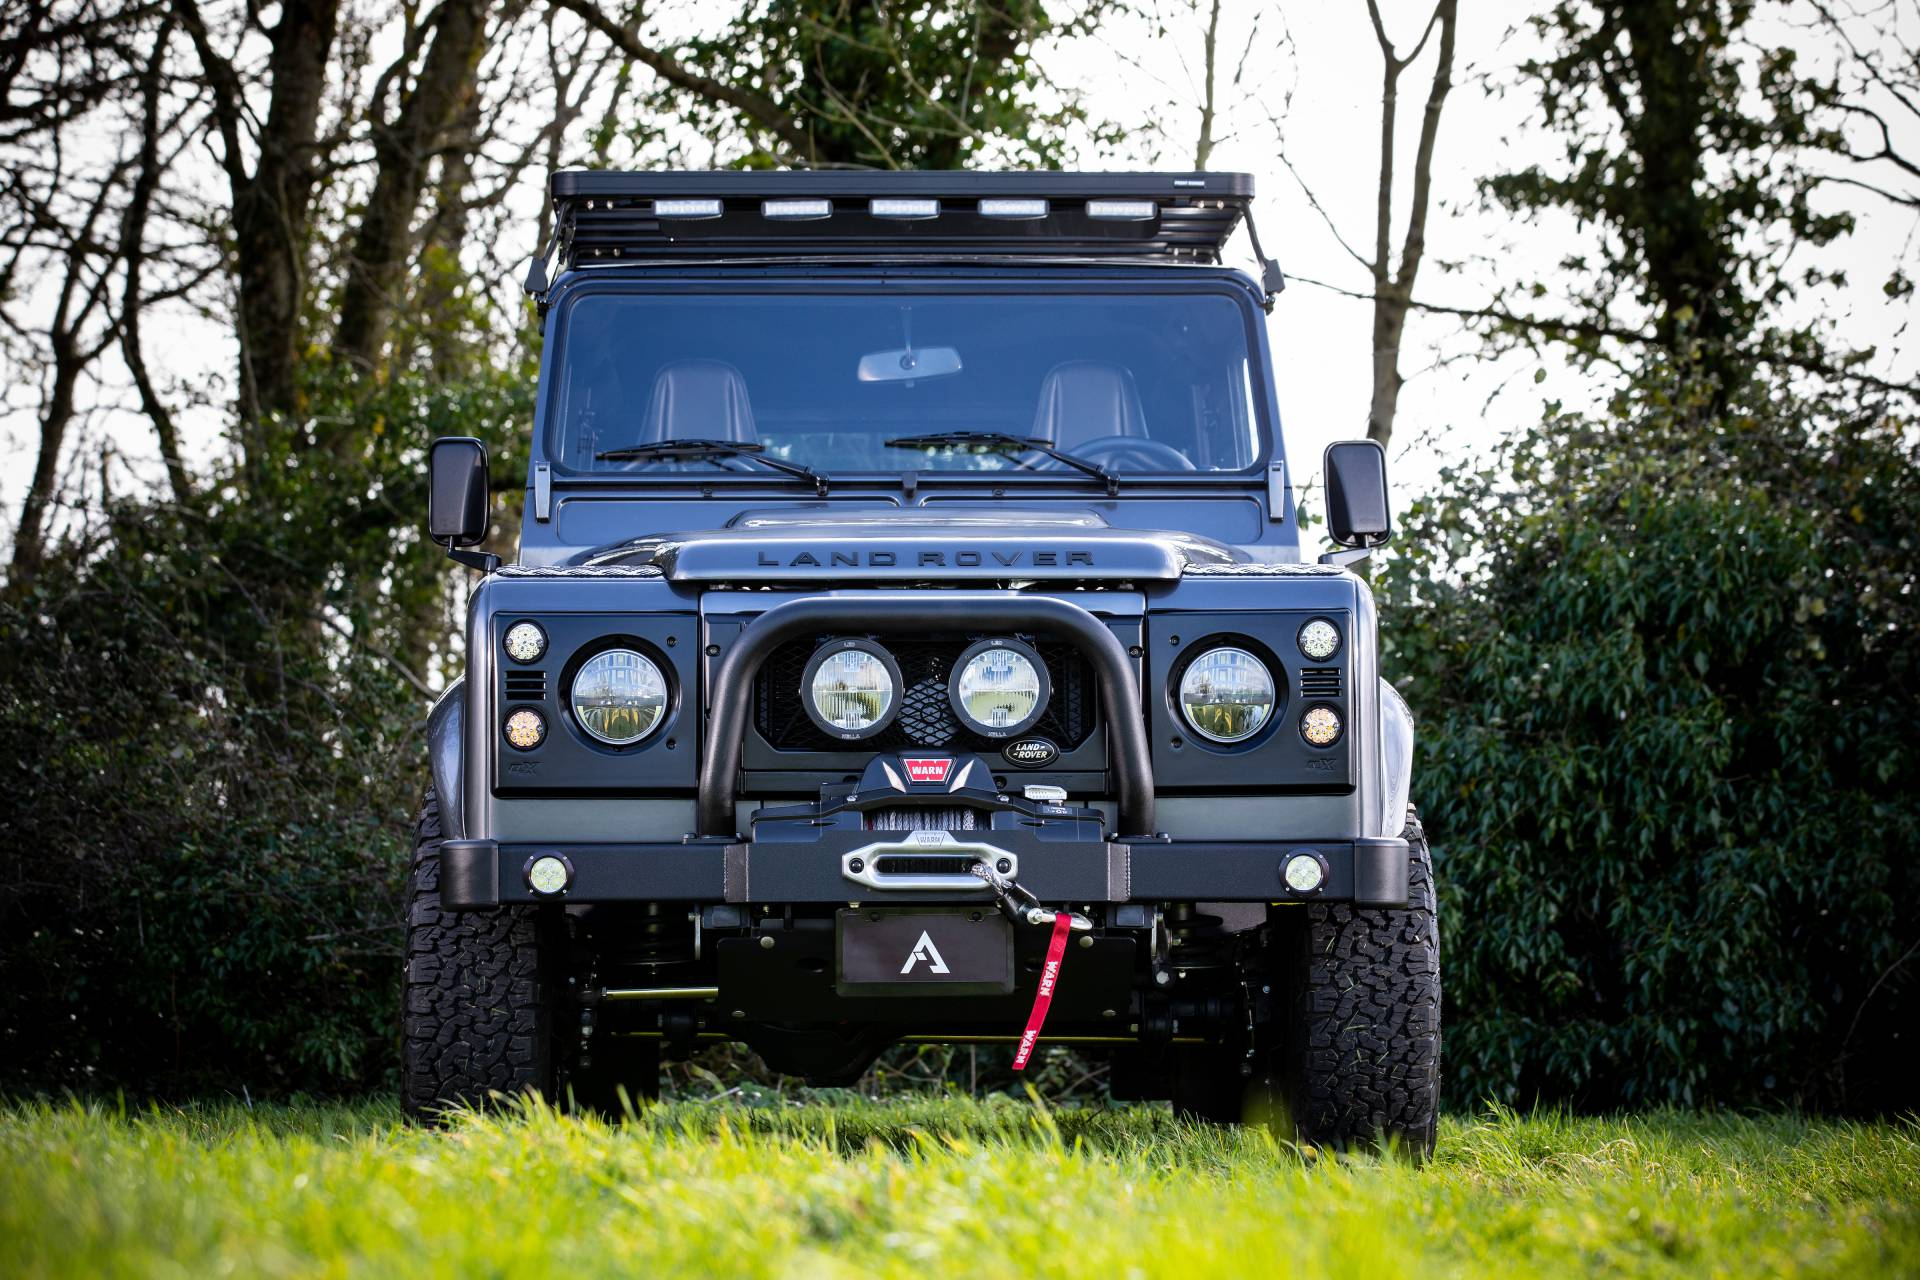 hight resolution of  defender restomod called the recon d110 based on the long wheelbase model it has been equipped to deal with the varied terrain of sun valley idaho